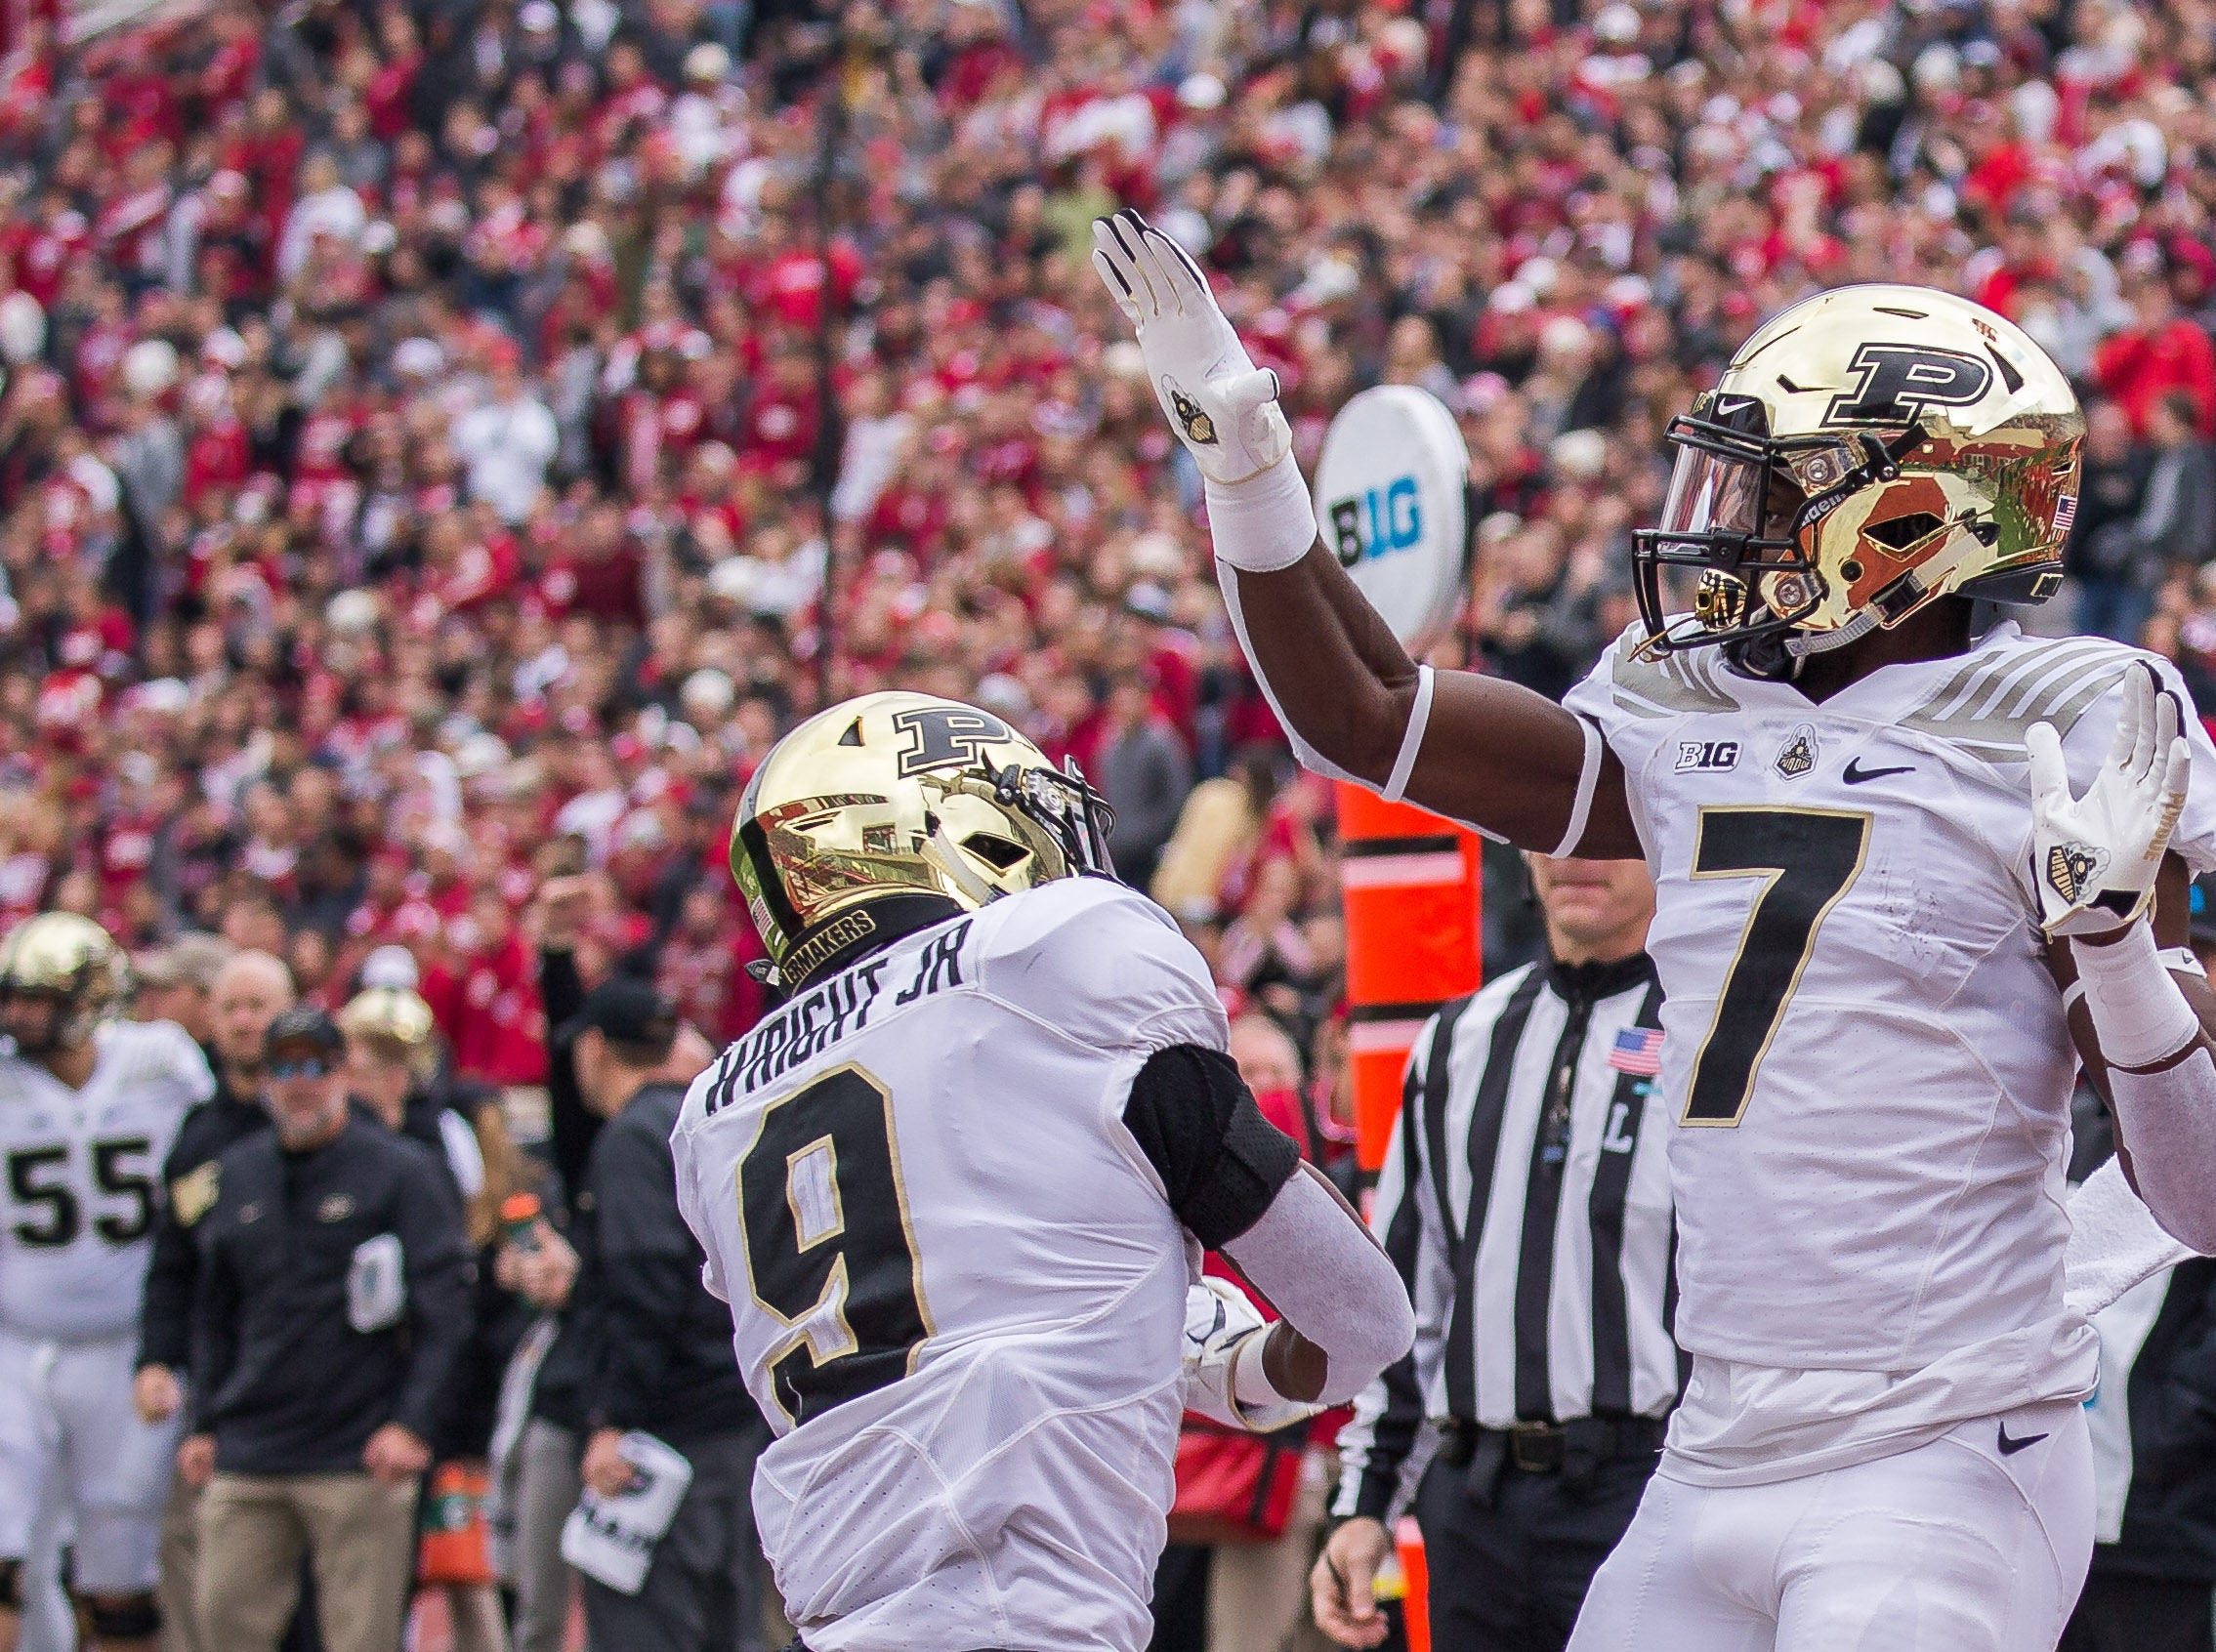 Purdue Boilermakers wide receiver Isaac Zico (7) celebrates with wide receiver Terry Wright (9) after a touchdown in the first quarter against the Indiana Hoosiers at Memorial Stadium.